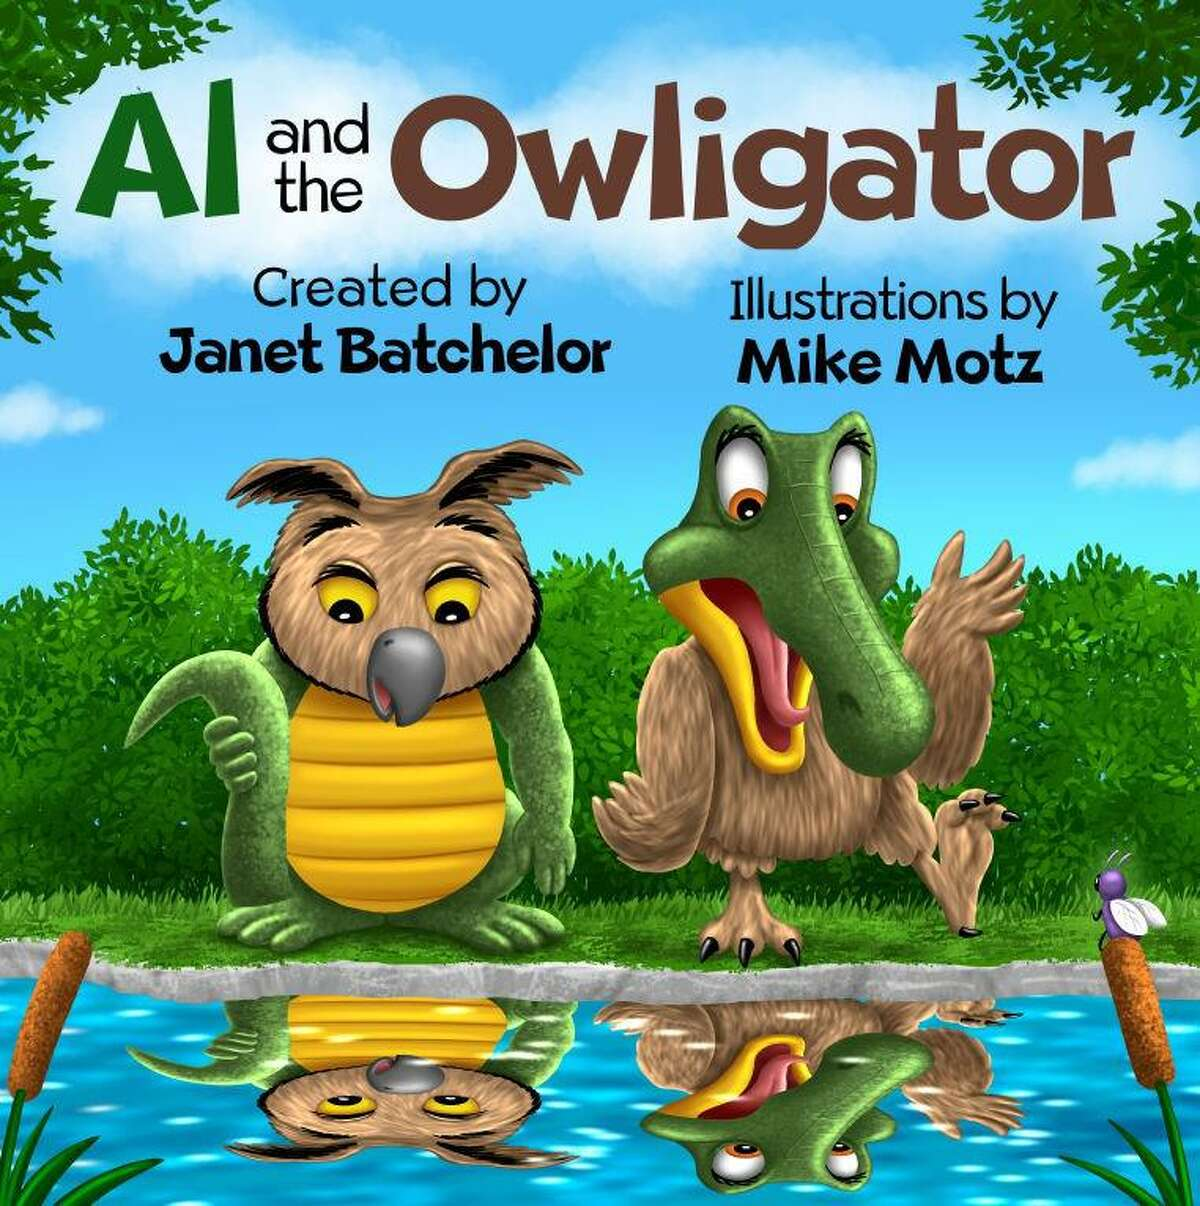 Janet Allen Batchelor announces the publication of a timely and unifying children's picture book,